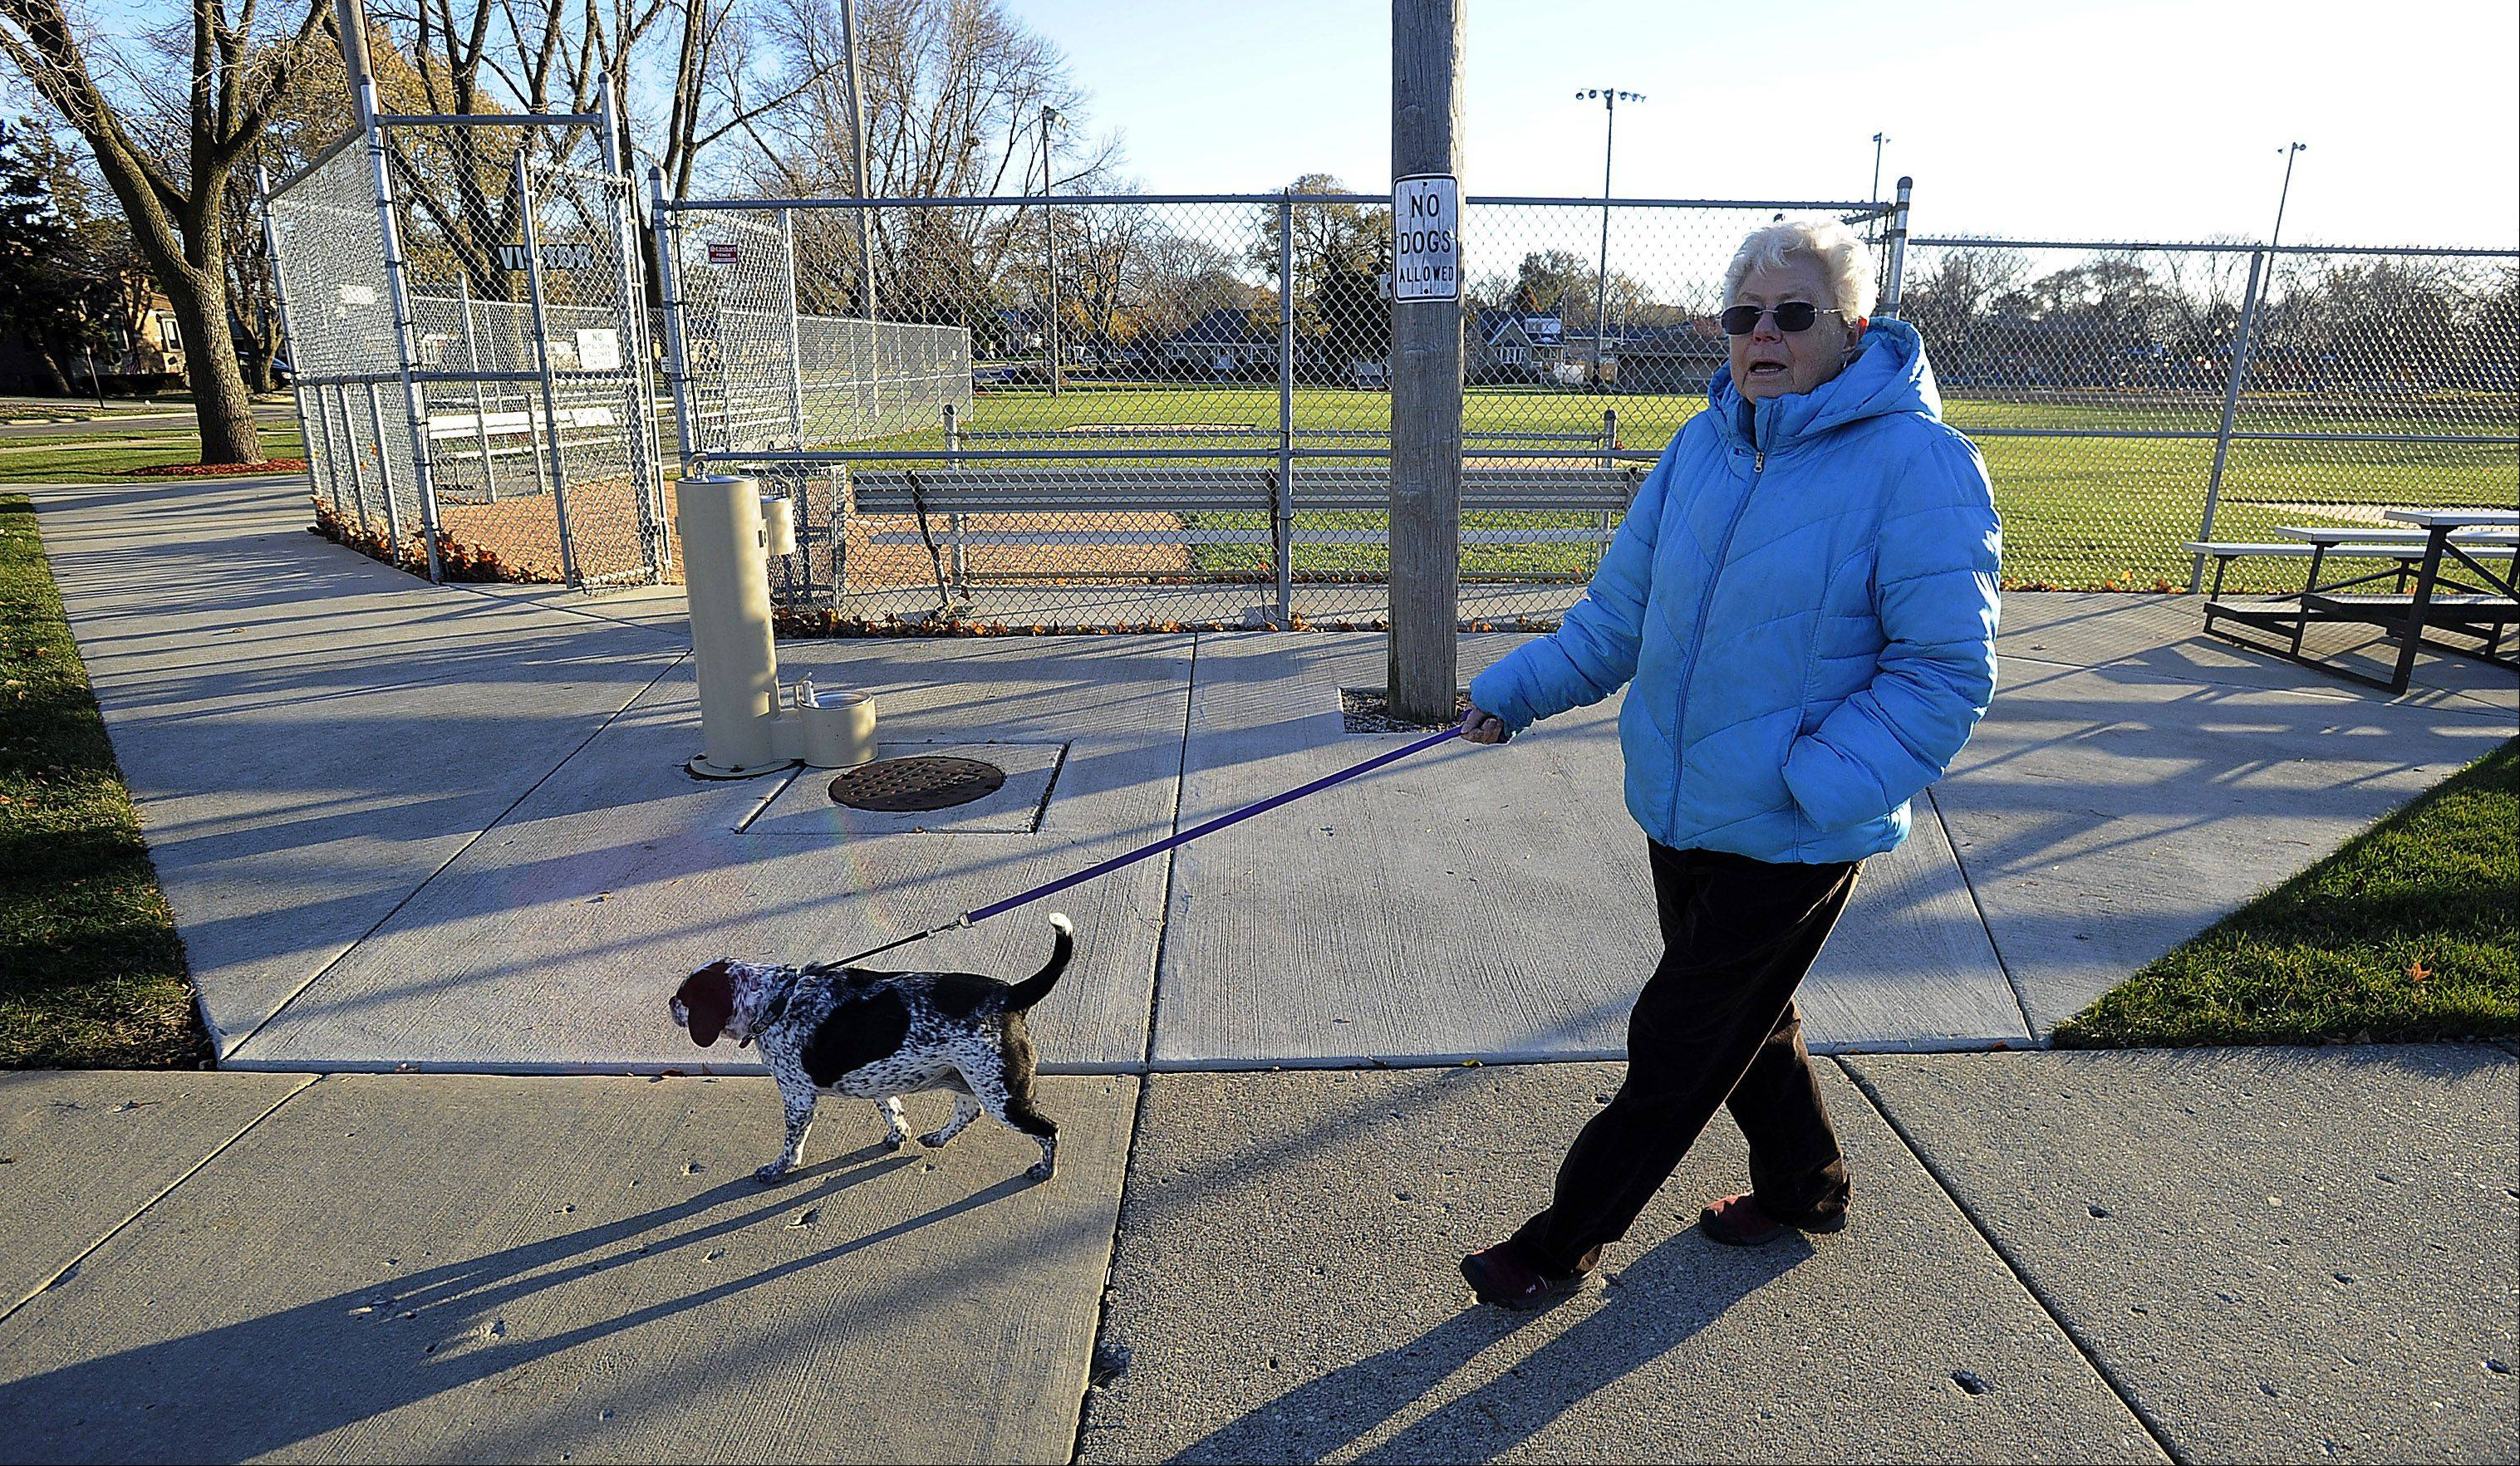 Elsie Fregeau of Rosemont walks her dog Wednesday past Margaret J. Lange Park, where officials have banned dogs because of safety concerns. Residents are permitted to walk their dogs on the public sidewalk, but not in the park.